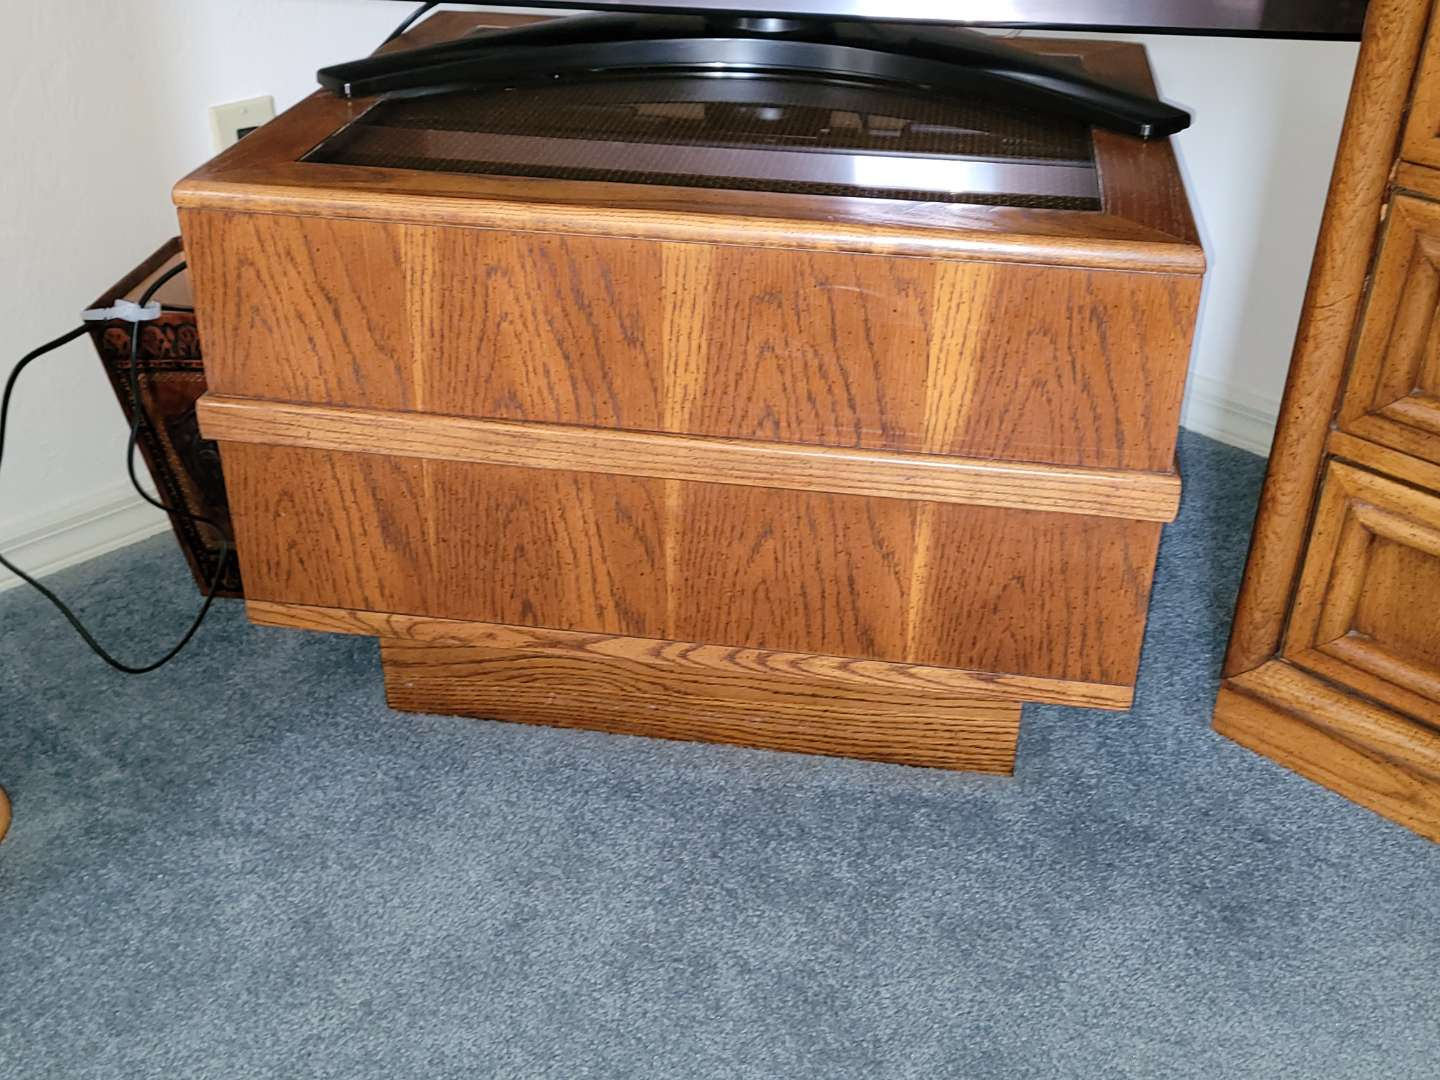 Lot # 49 Wood Table/TV Stand w/ Glass Top Insert